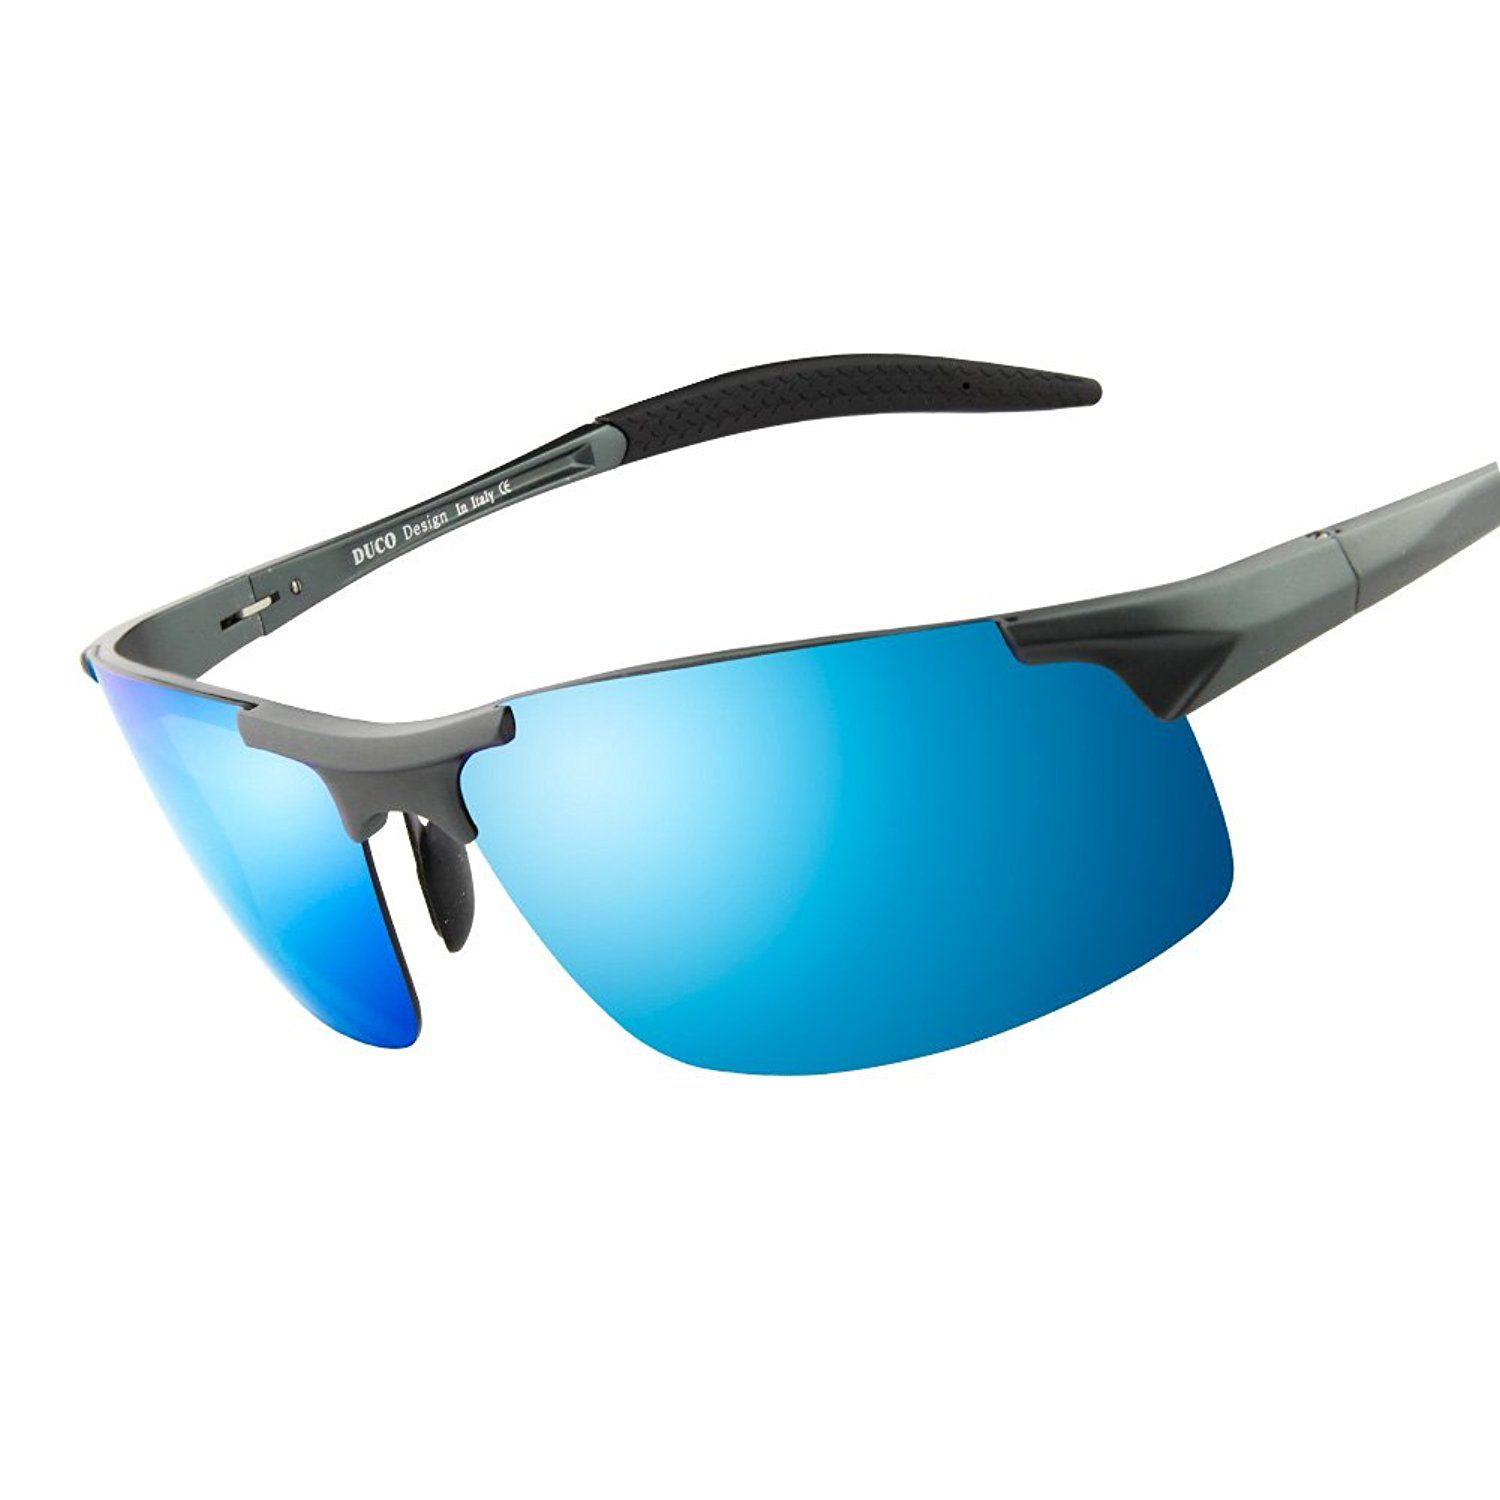 88936be2ba19 The 10 Best Polarized Sunglasses Under  50 - Top Polarized Reviews ...